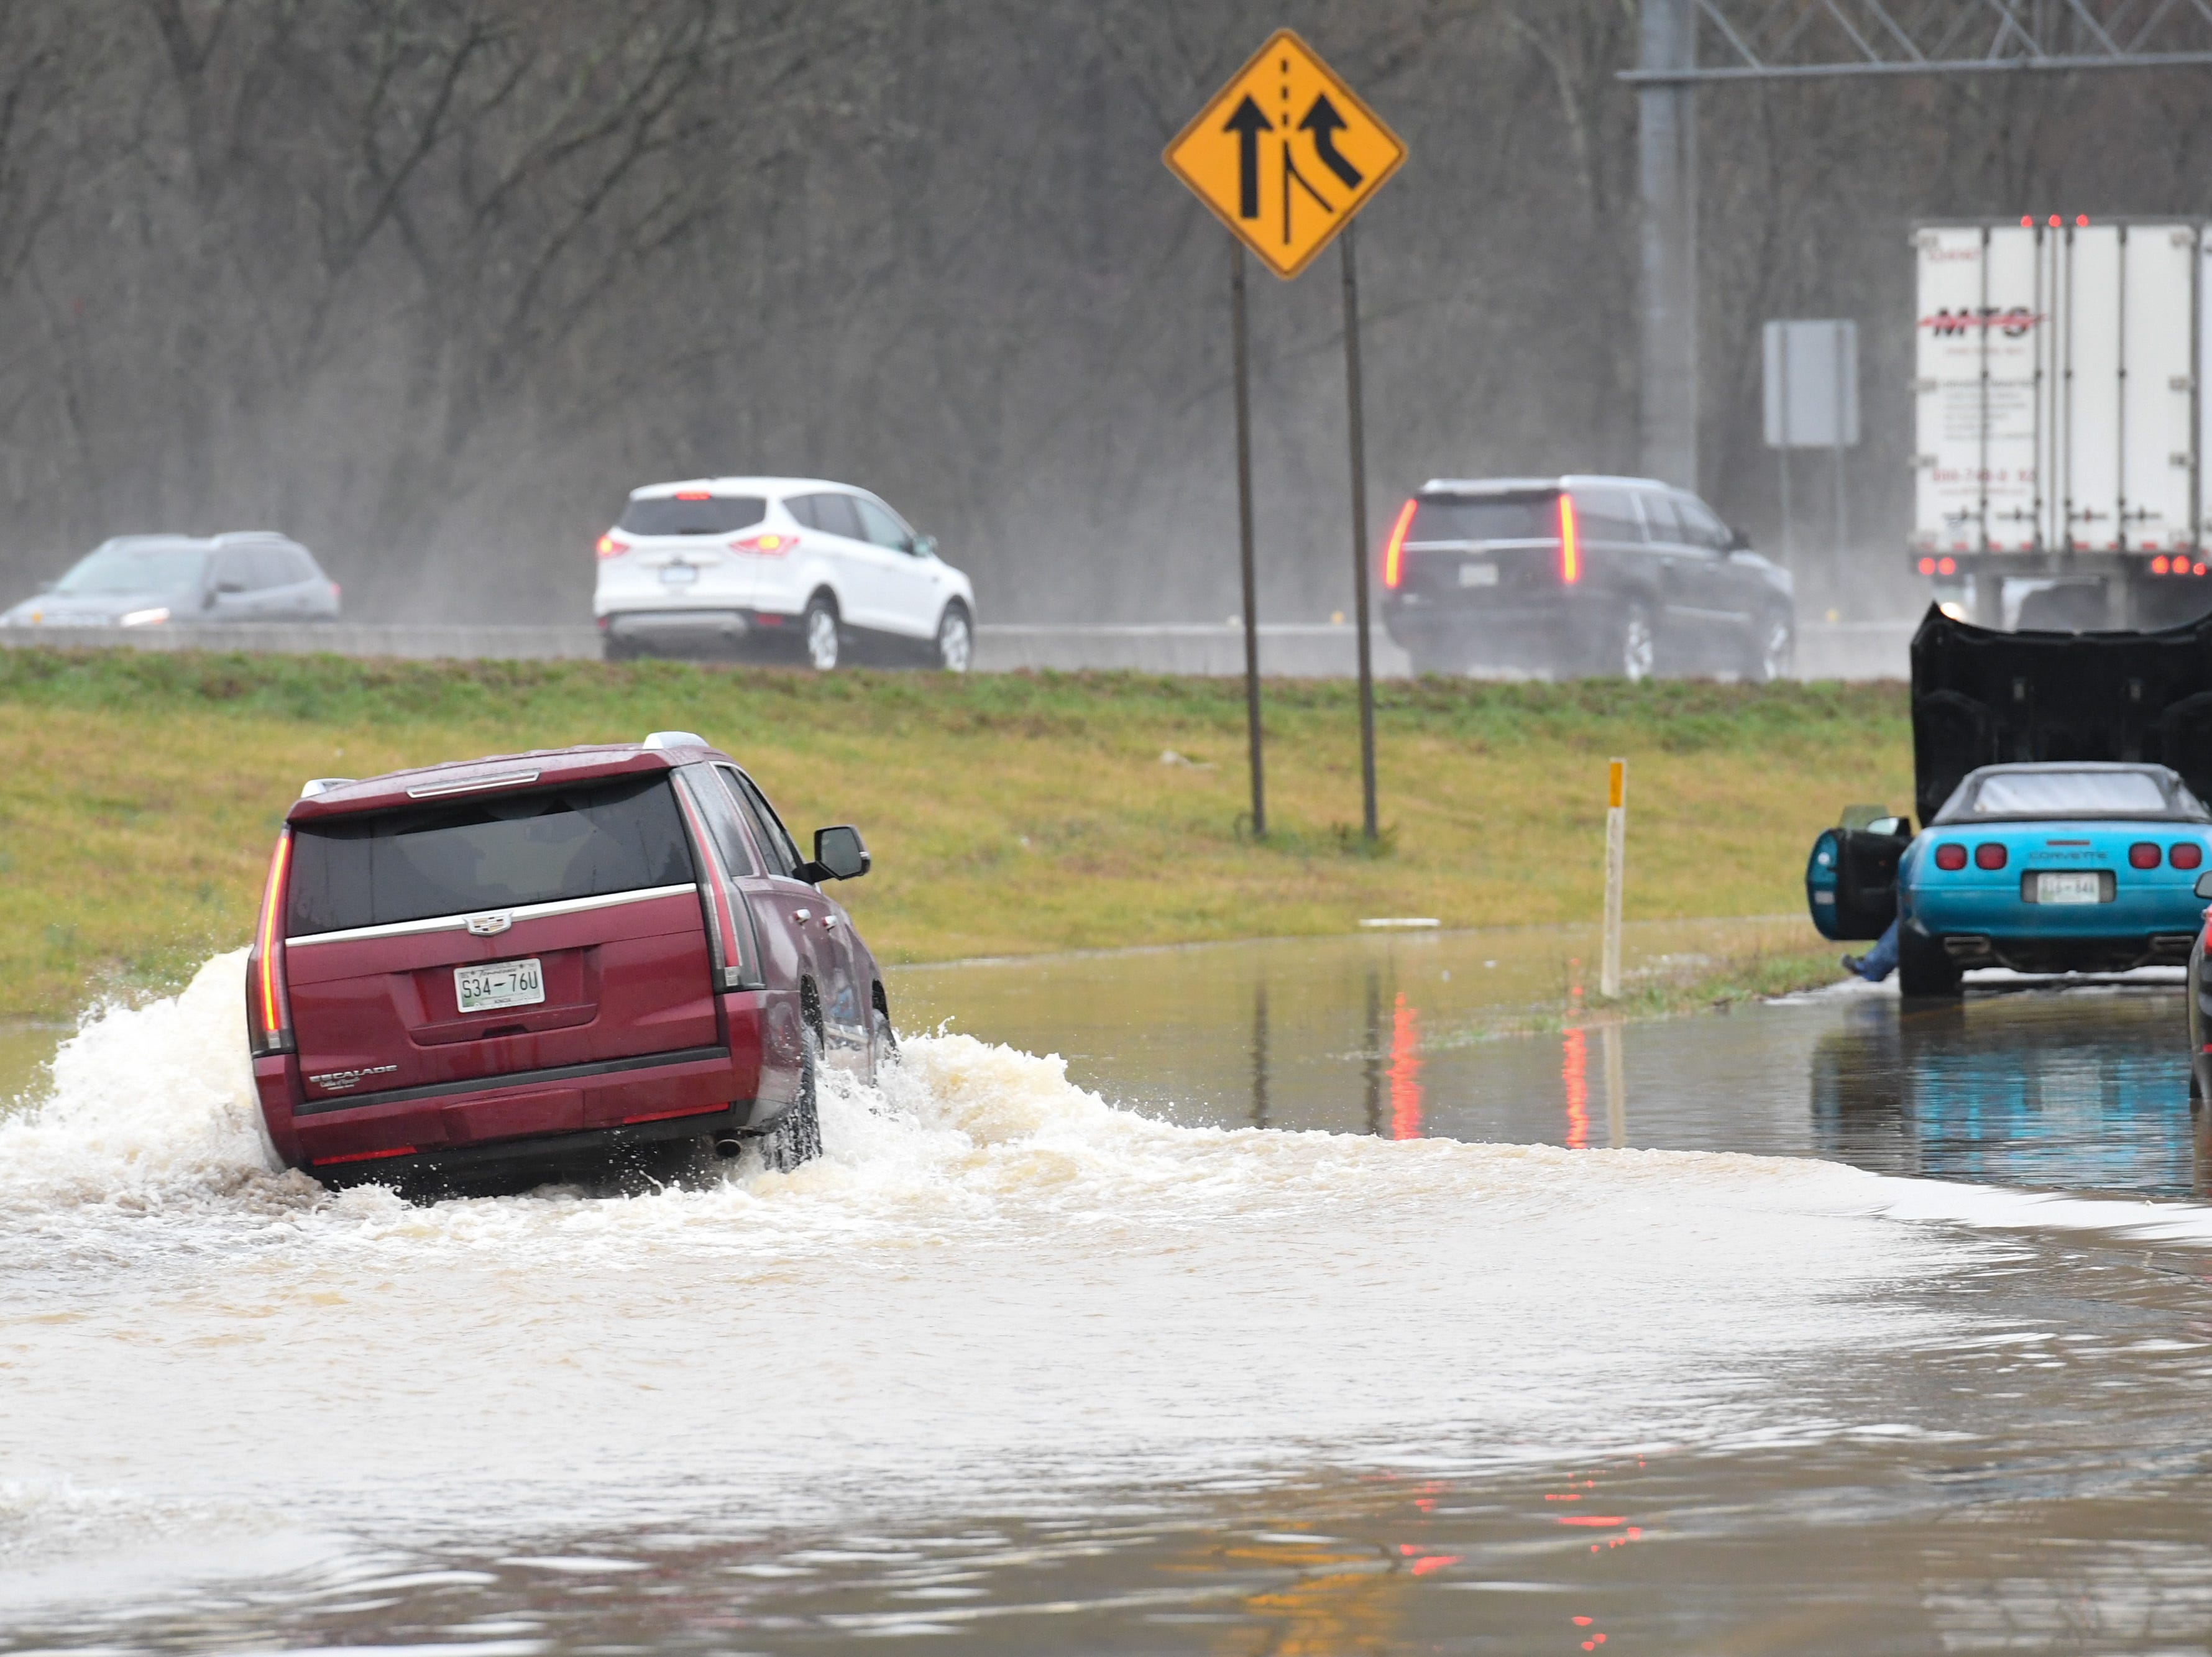 A motorist navigates the flooded entrance ramp to I-75 South from Emory Road in Knox County Saturday Feb. 23, 2019. The Knoxville area could see between 2 and 3 inches of rain through the weekend.